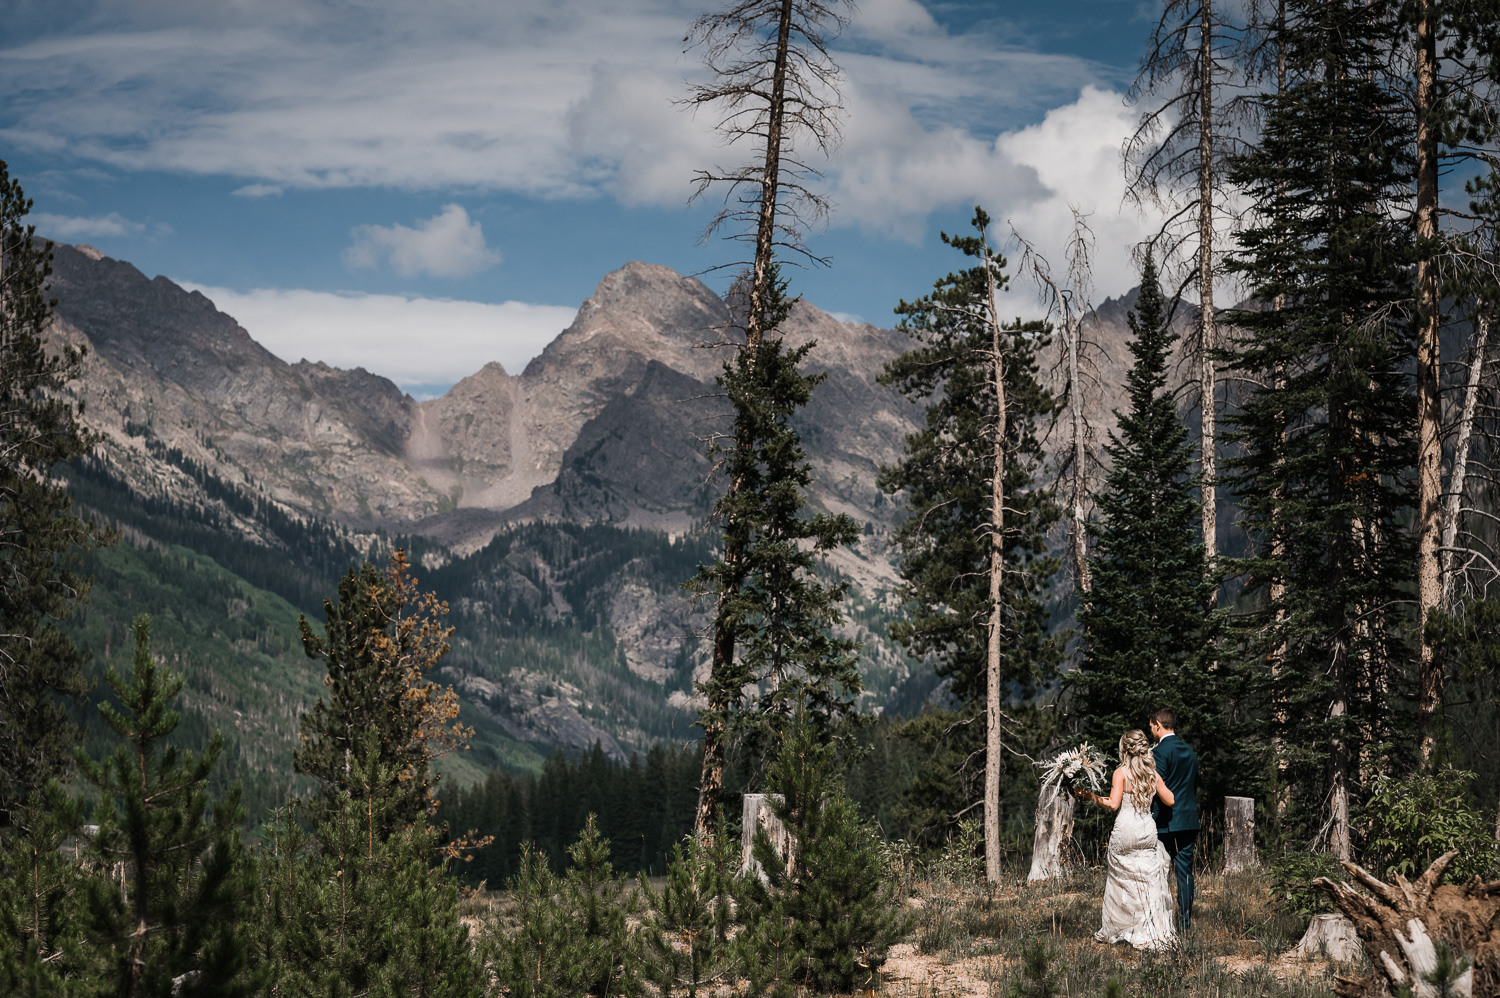 Bride and Groom walk together through the rocky mountains with epic view